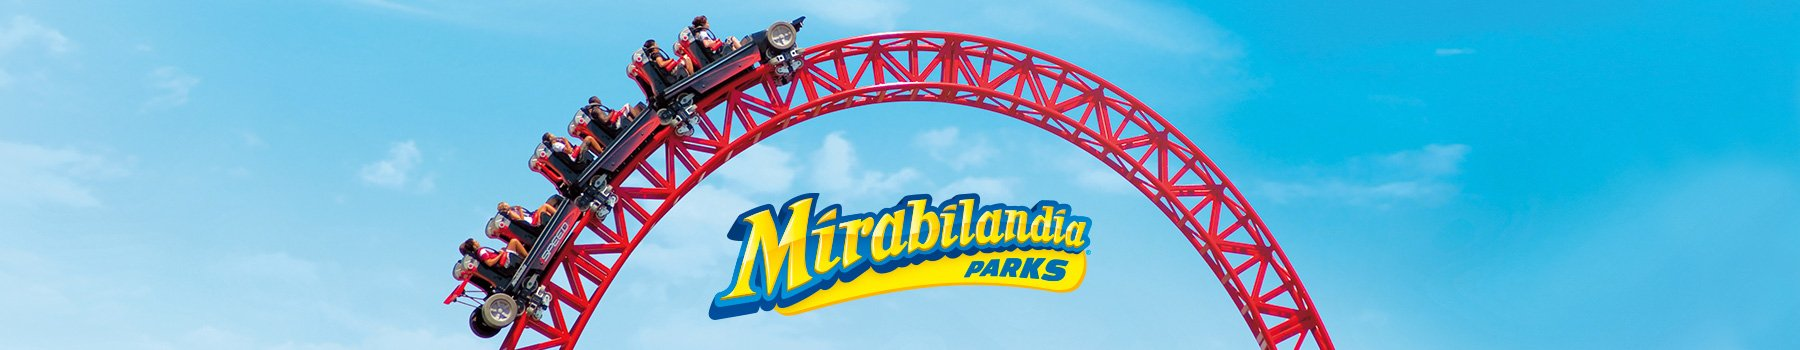 Bonelli Bus is the official carrier of Mirabilandia and will take you at special prices to the most famous amusement park on the Adriatic Riviera